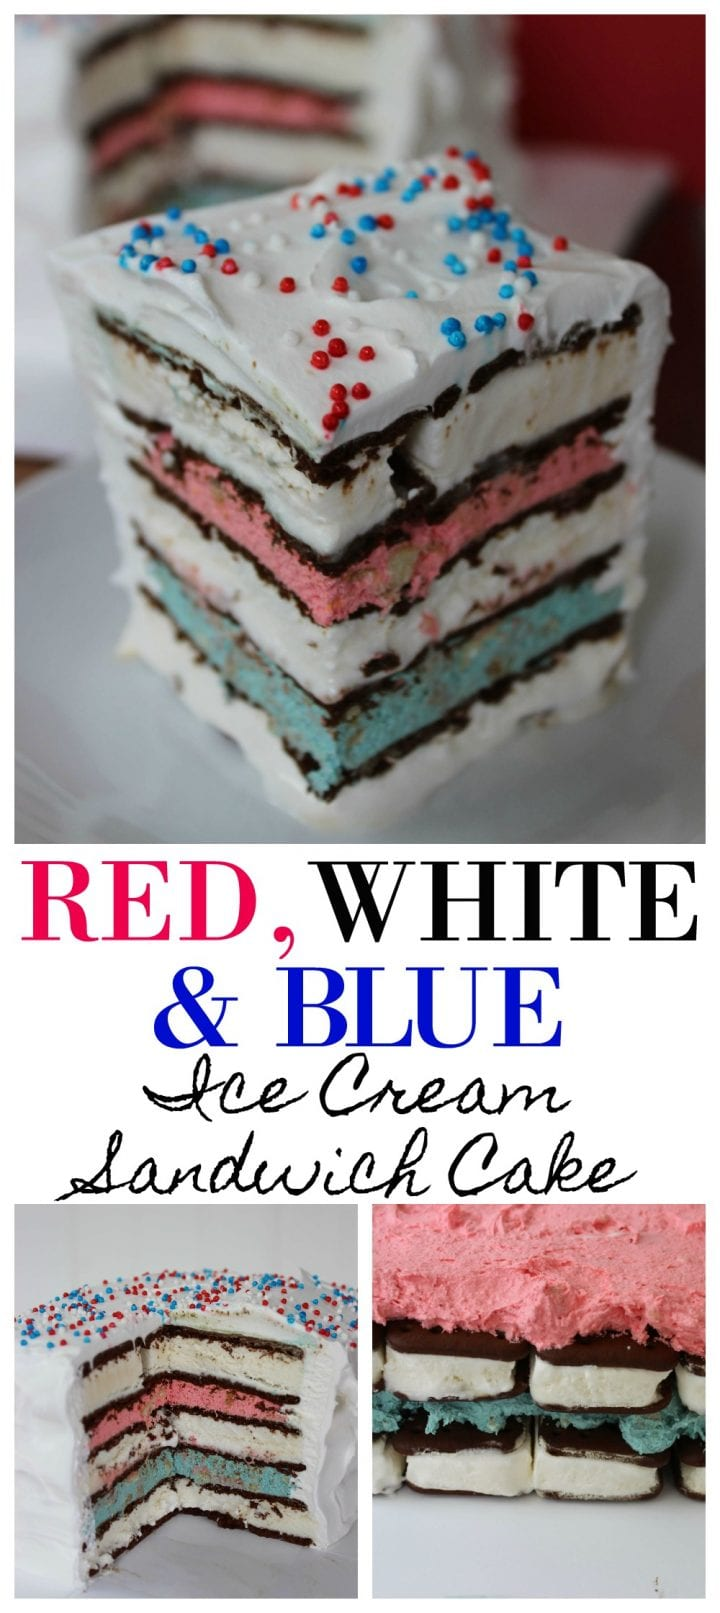 Easy Red White and Blue Ice Cream Sandwich Cake